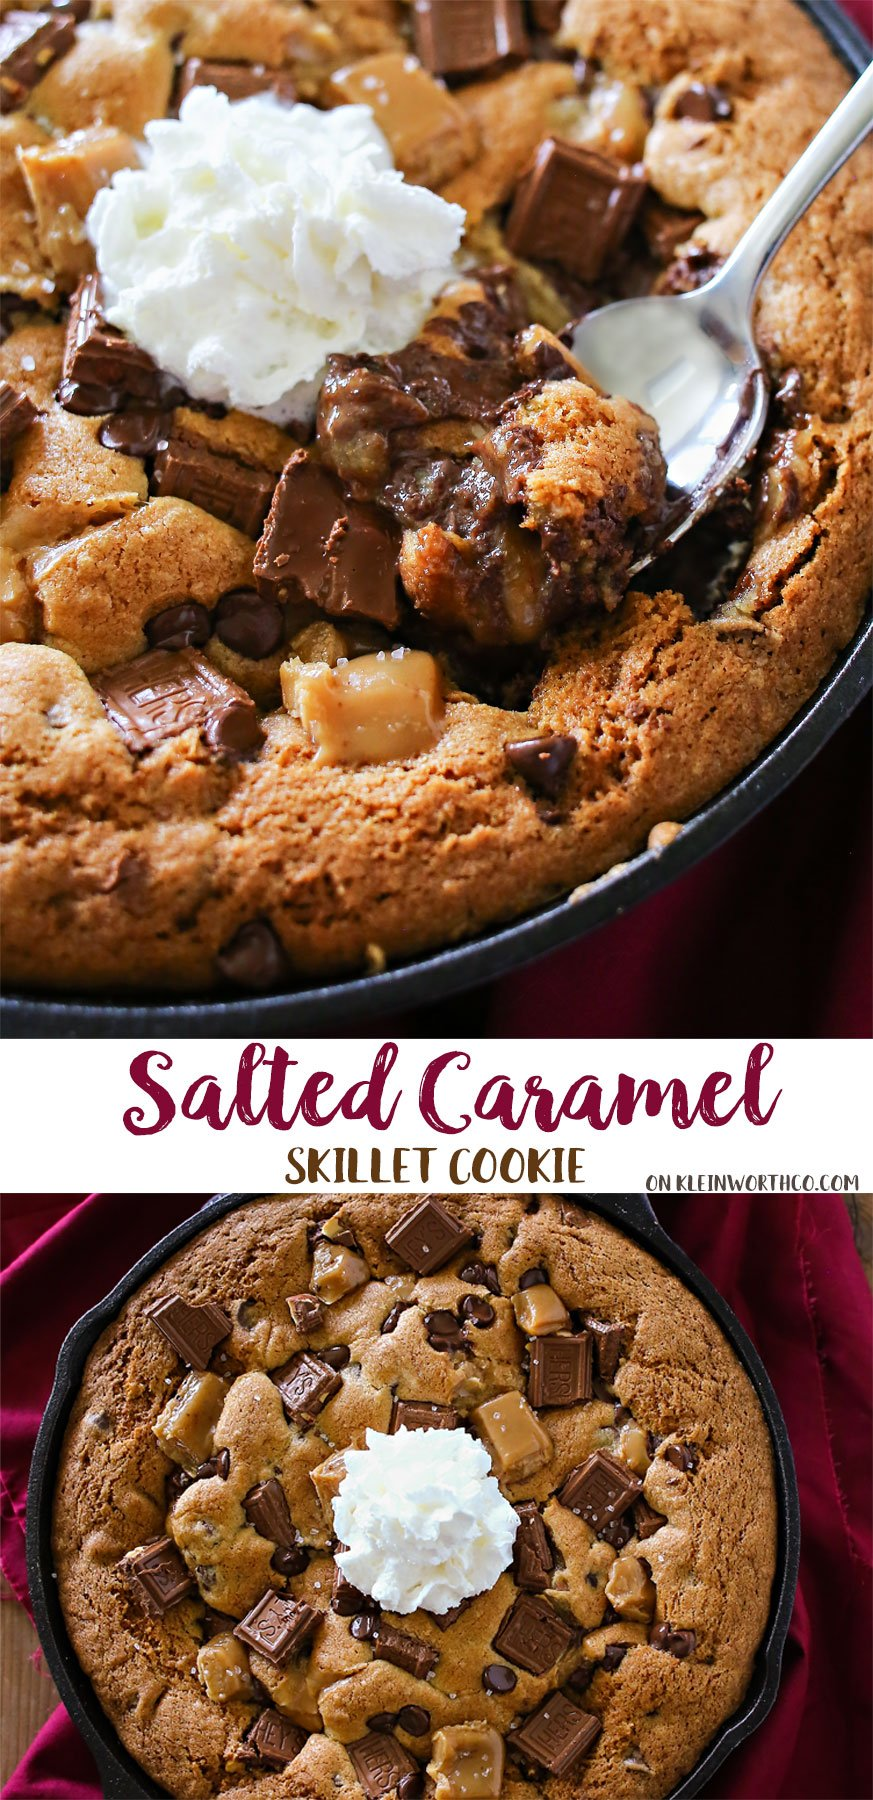 Salted Caramel Skillet Cookie